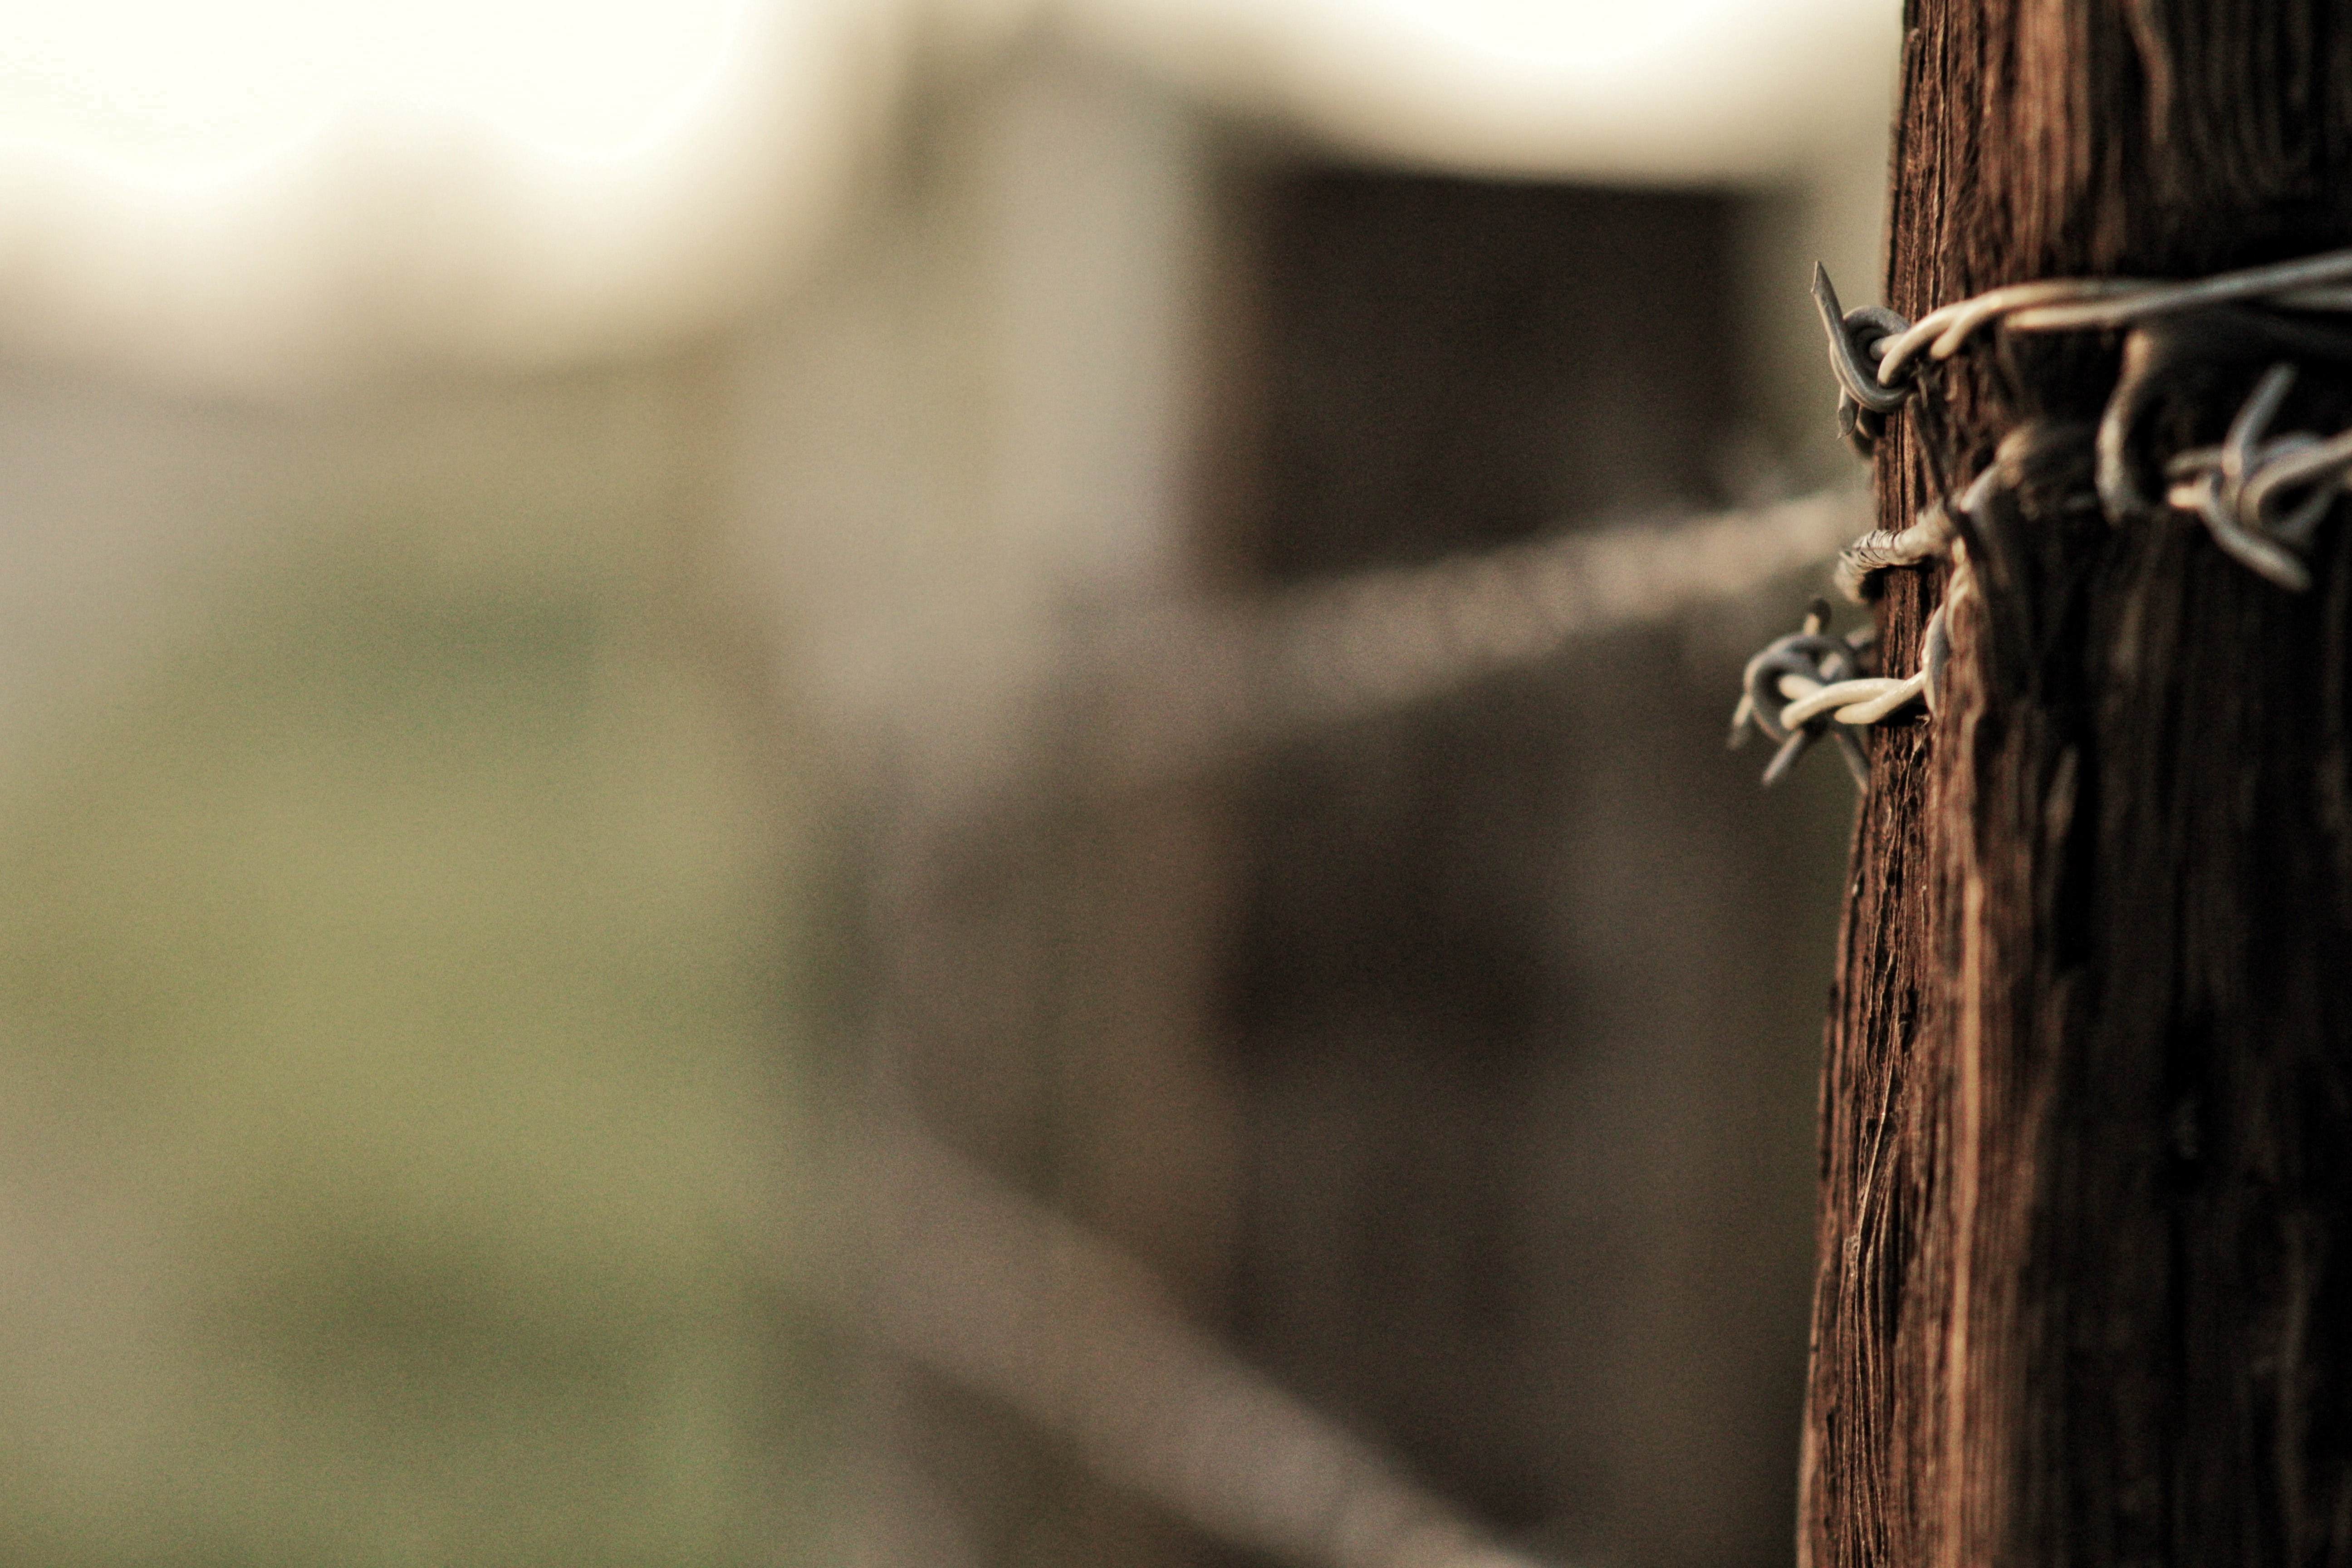 Close-up of a wooden post with barbed wire attached to it